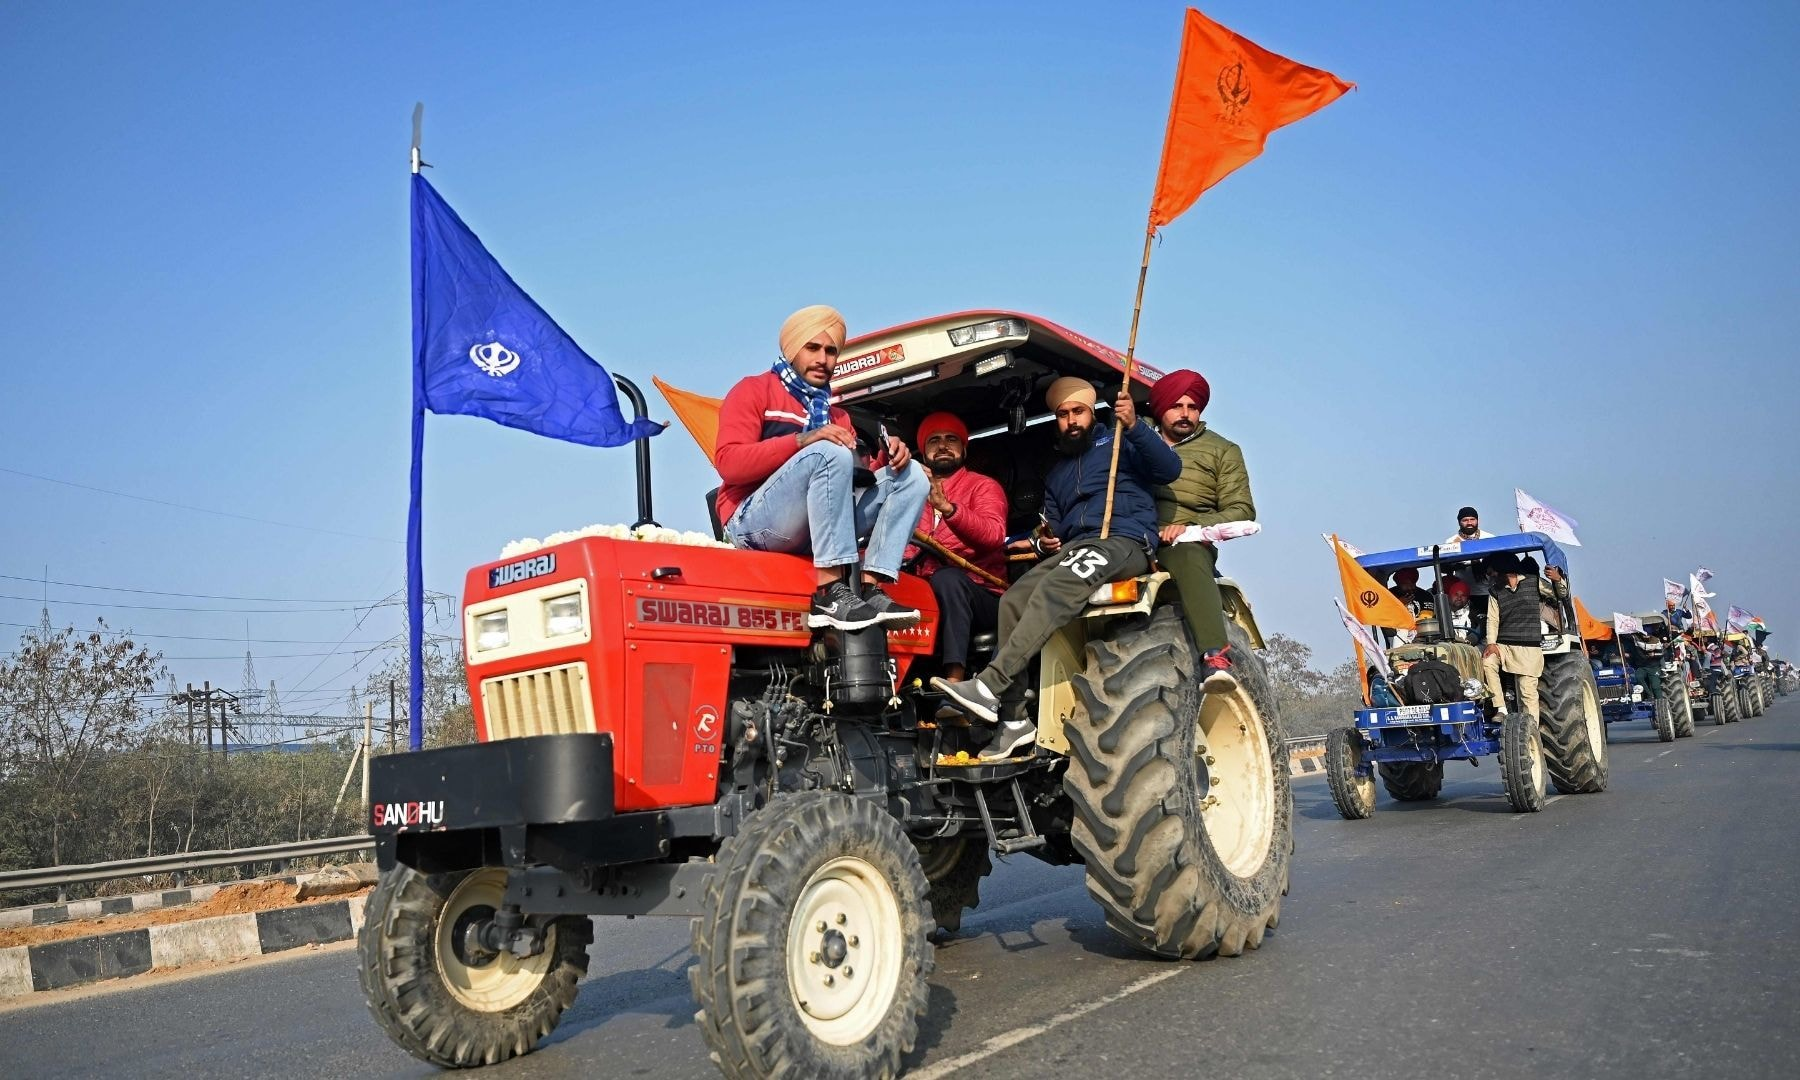 Farmers take part in a tractor rally as they continue to demonstrate against the Indian government's recent agricultural reforms in New Delhi on January 26, 2021. — AFP